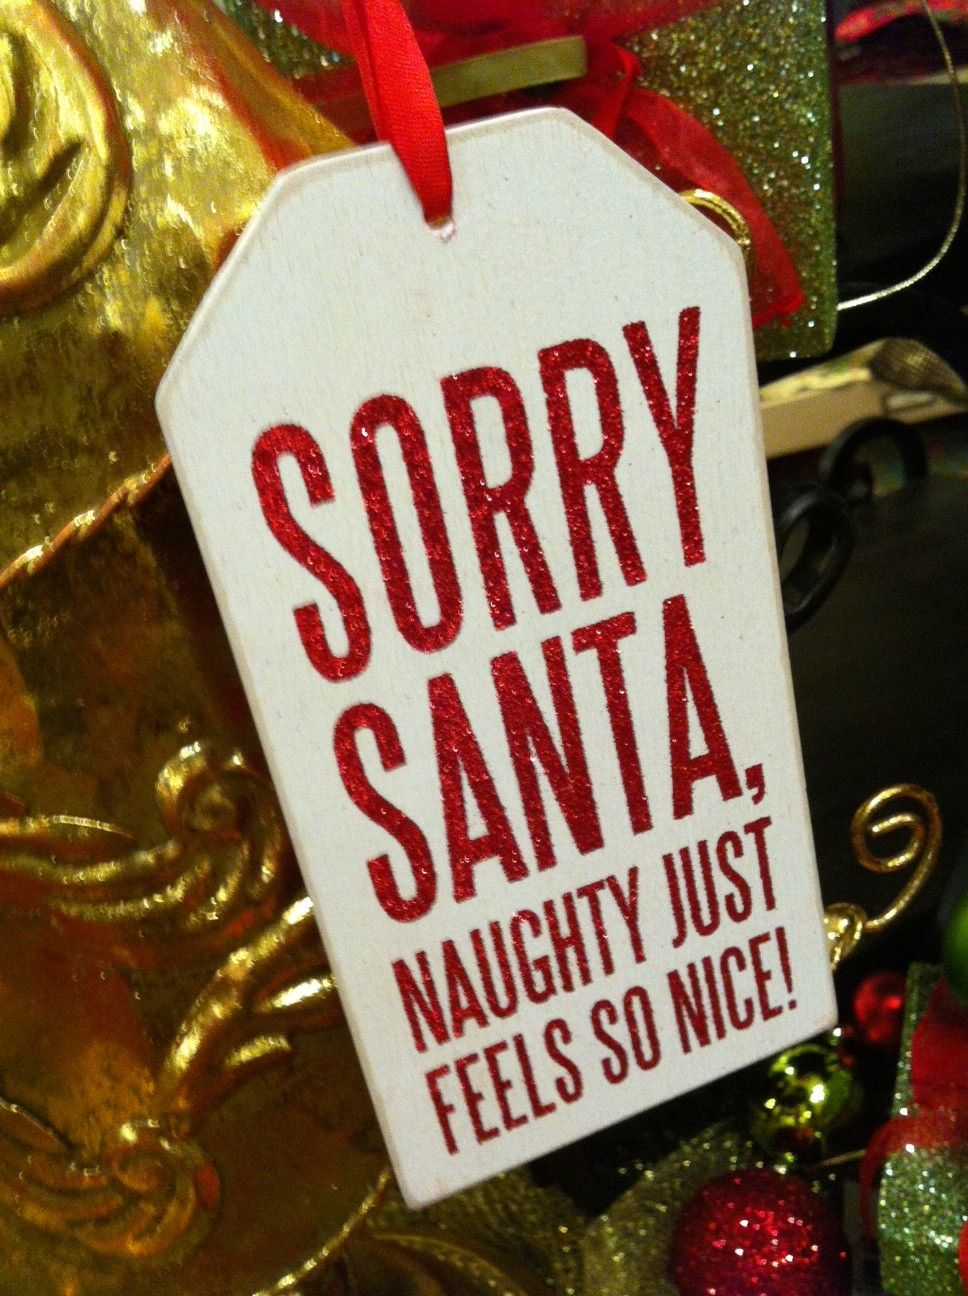 He gonna find out who's naughty or nice. | Christmas ...